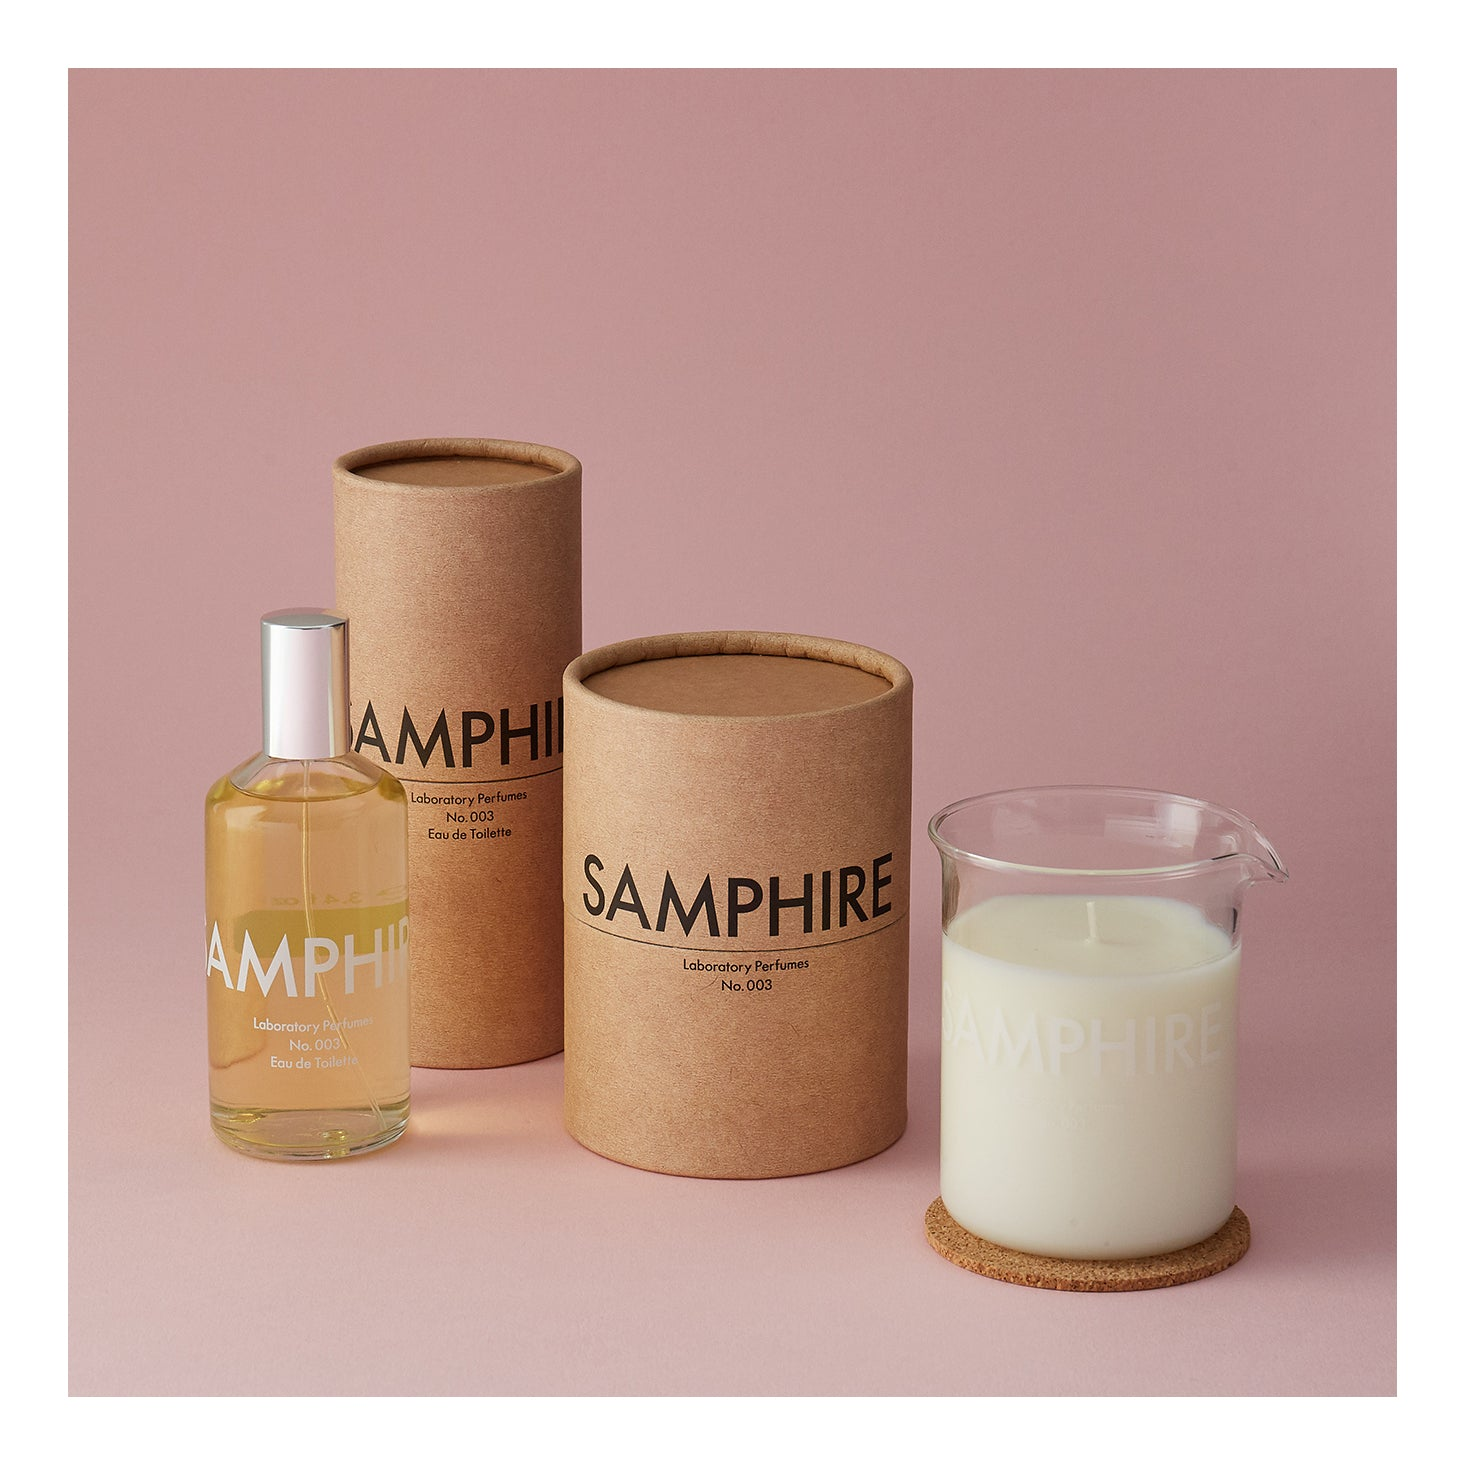 Laboratory Perfumes Samphire EDT - 100ml